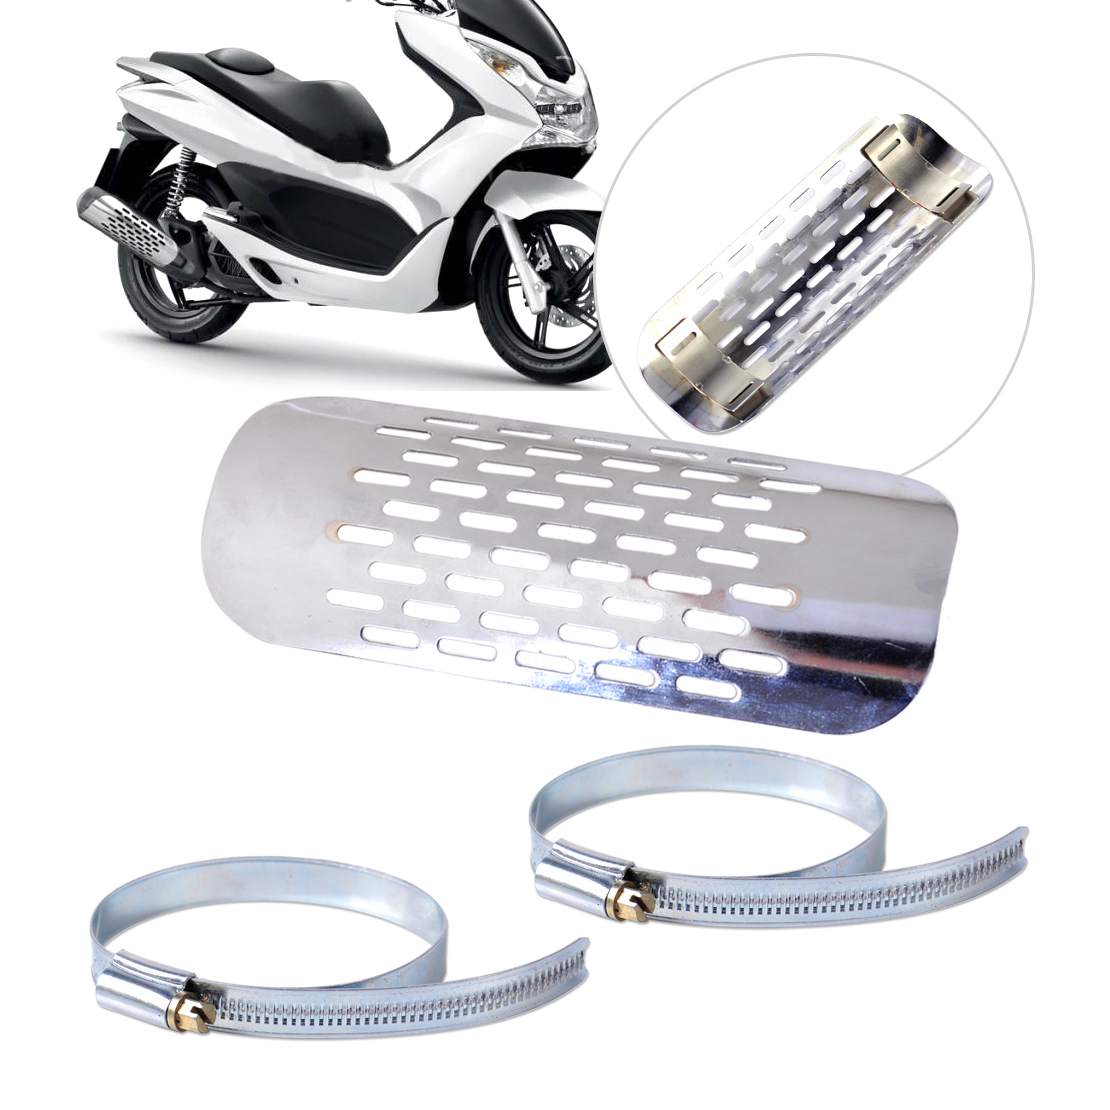 CITALL Silver font b Exhaust b font Muffler Pipe Heat Shield Cover Guard Fit For Harley